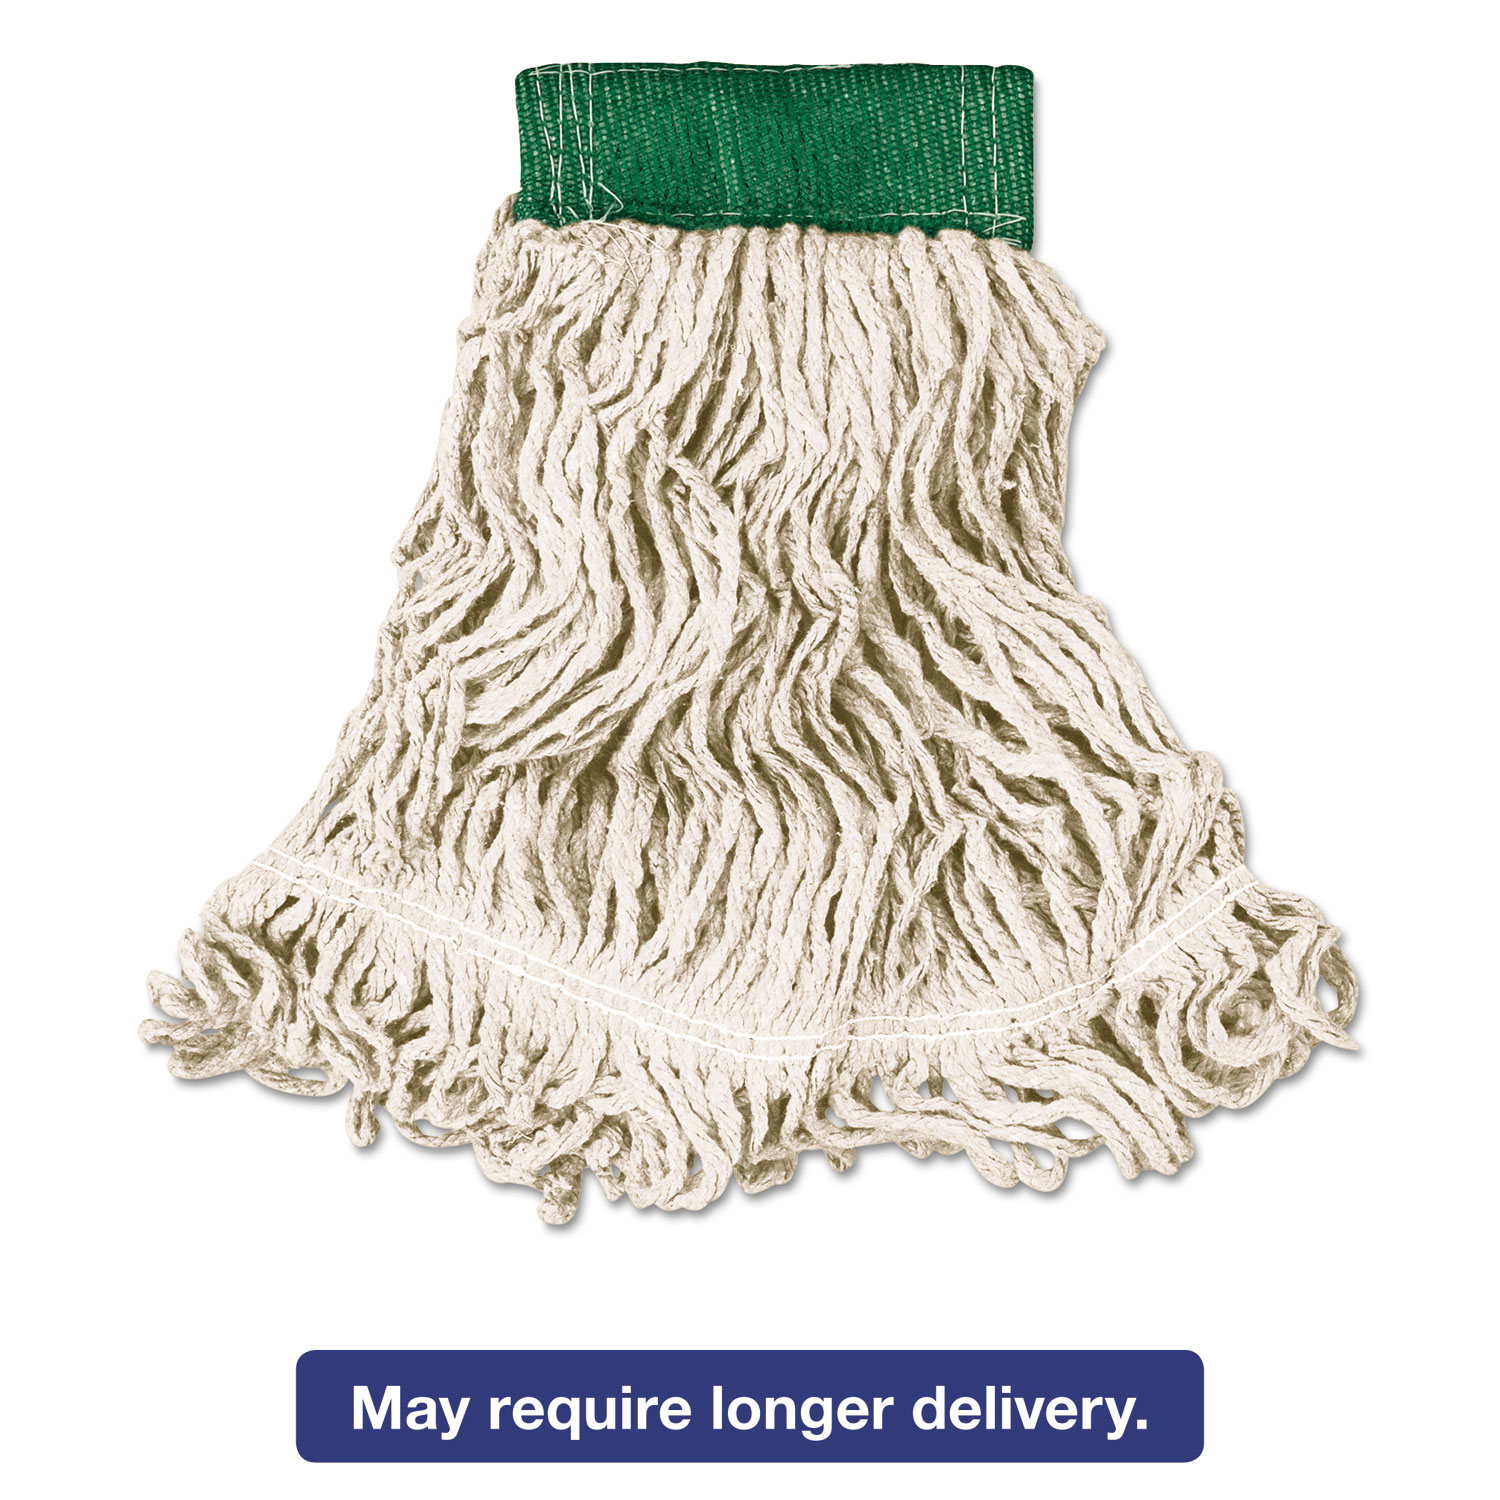 Super Stitch Looped-End Wet Mop Head, Cotton/Synthetic, Medium, Green/White